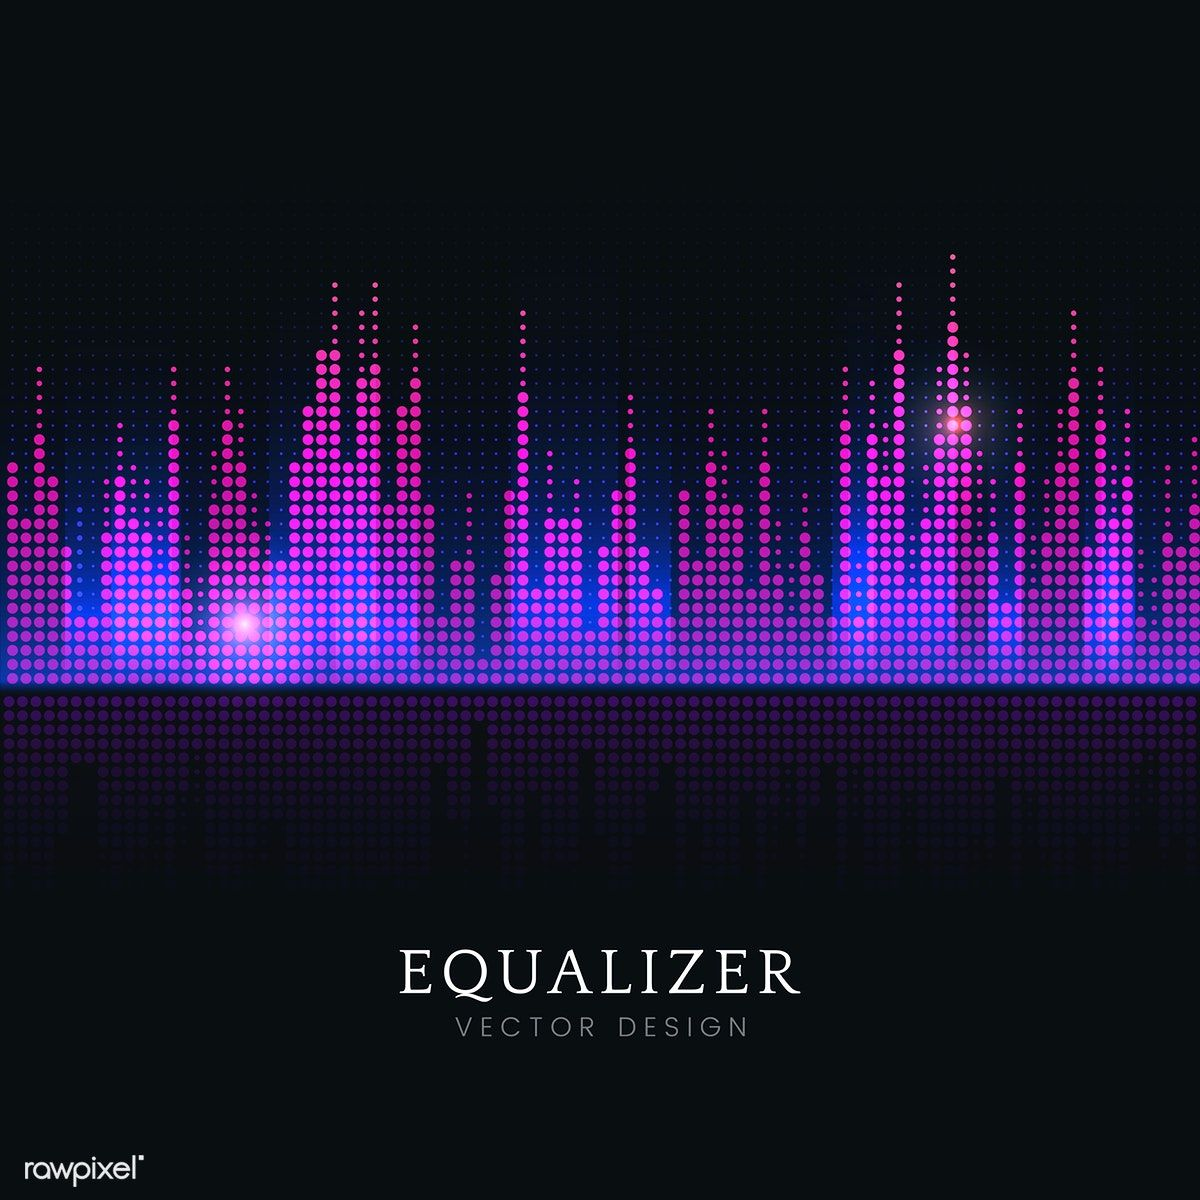 Download Free Vector Of Colorful Sound Wave Equalizer Vector Design By Kappy Kappy About Sound Wave Box Colorful Vector Design Sound Waves Design Sound Waves